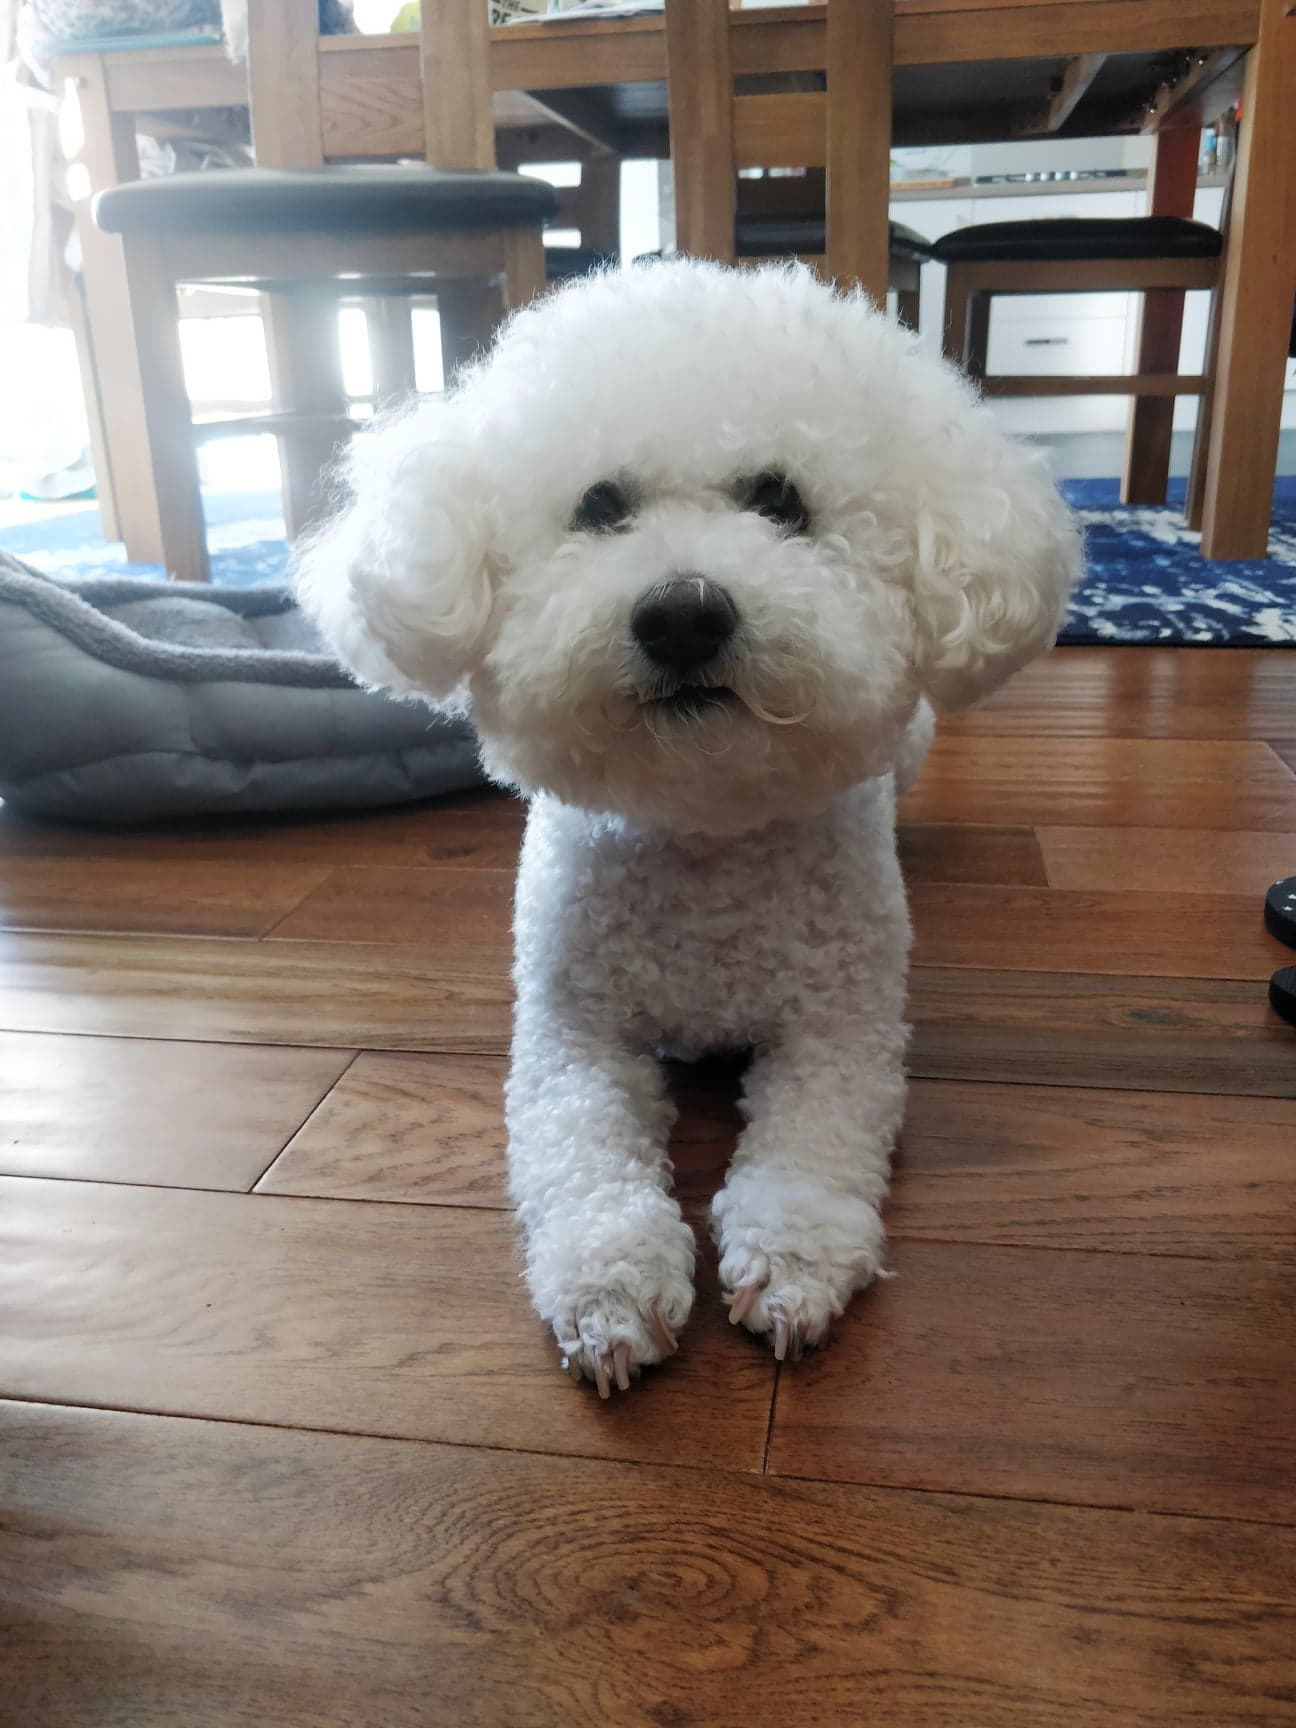 Bichon Frise doing dog training and learning to lie down on command